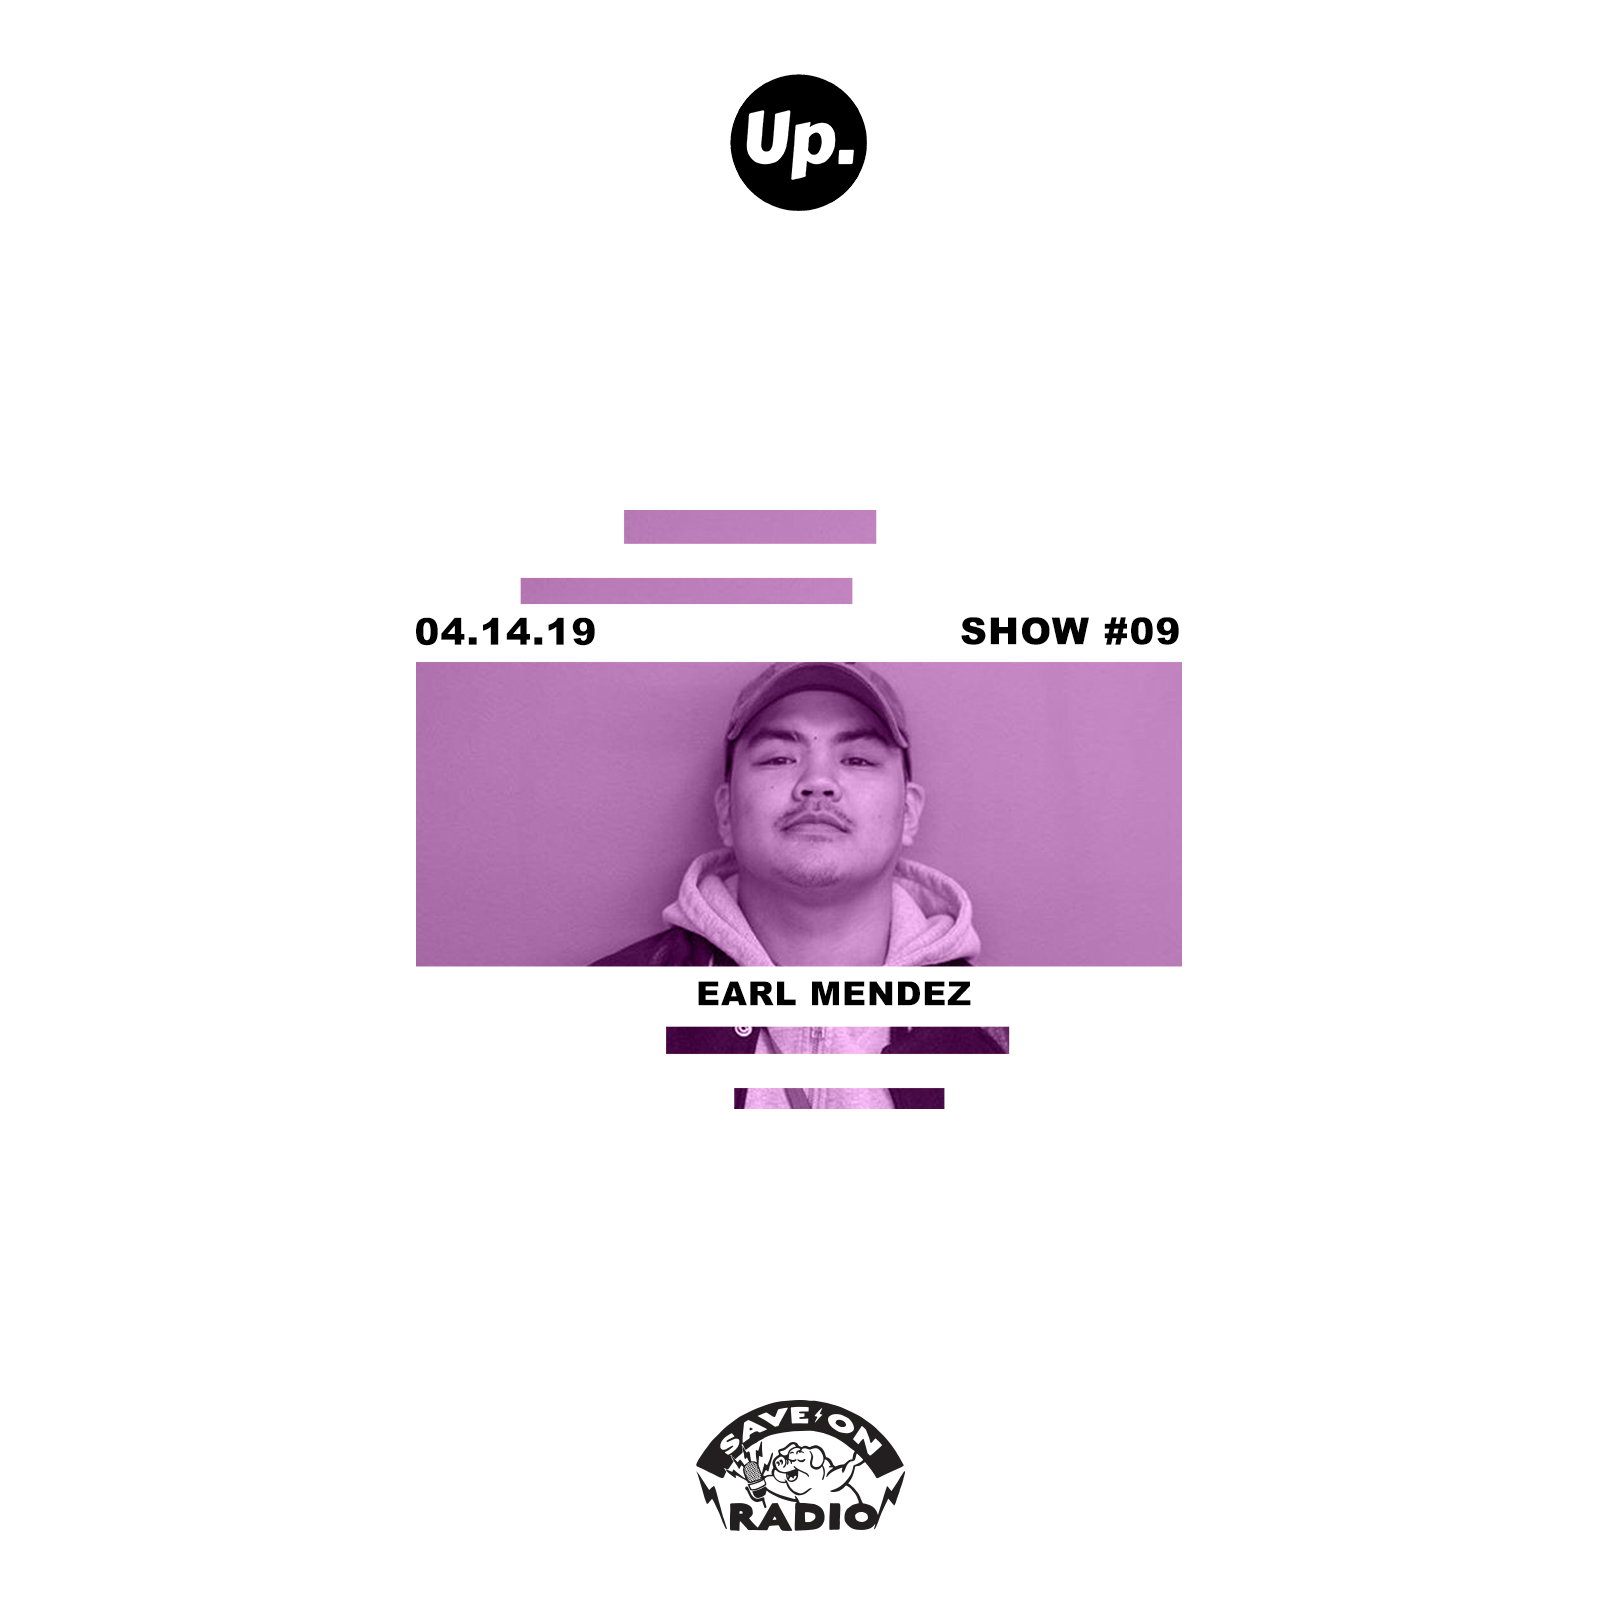 Show #09 featuring Earl Mendez